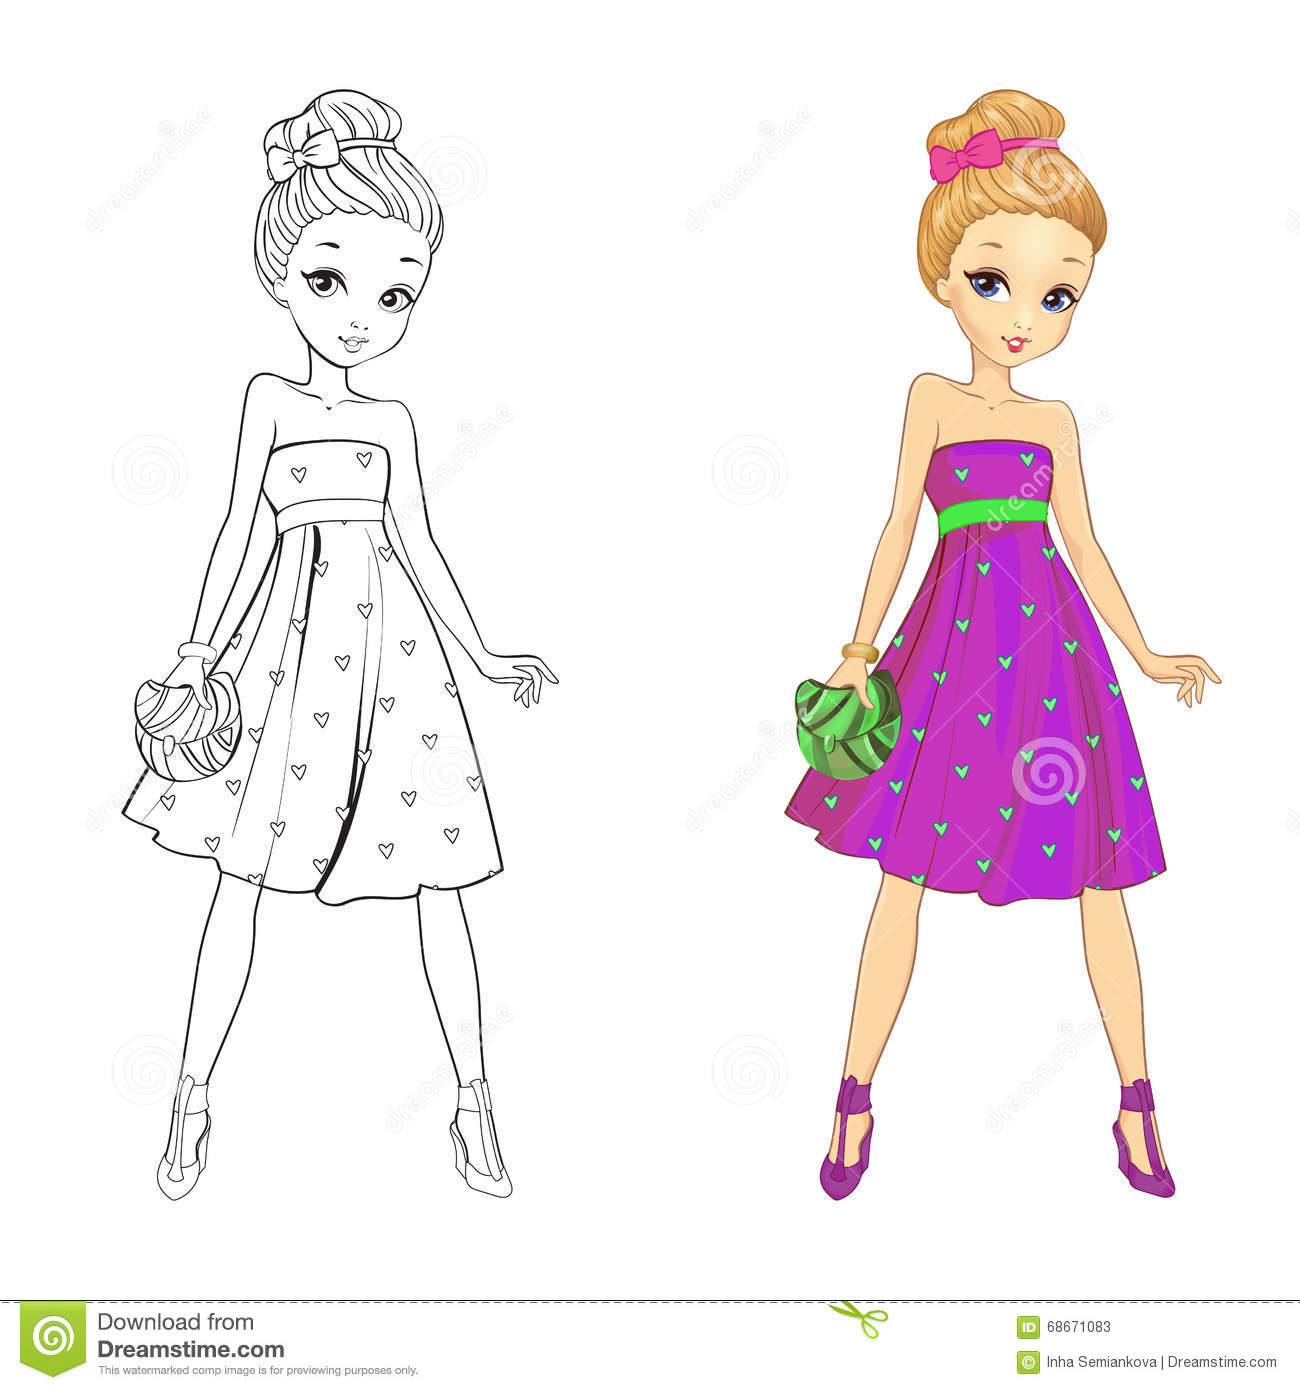 Coloring Book Of Heart Girl Stock Vector - Illustration of beautiful ...